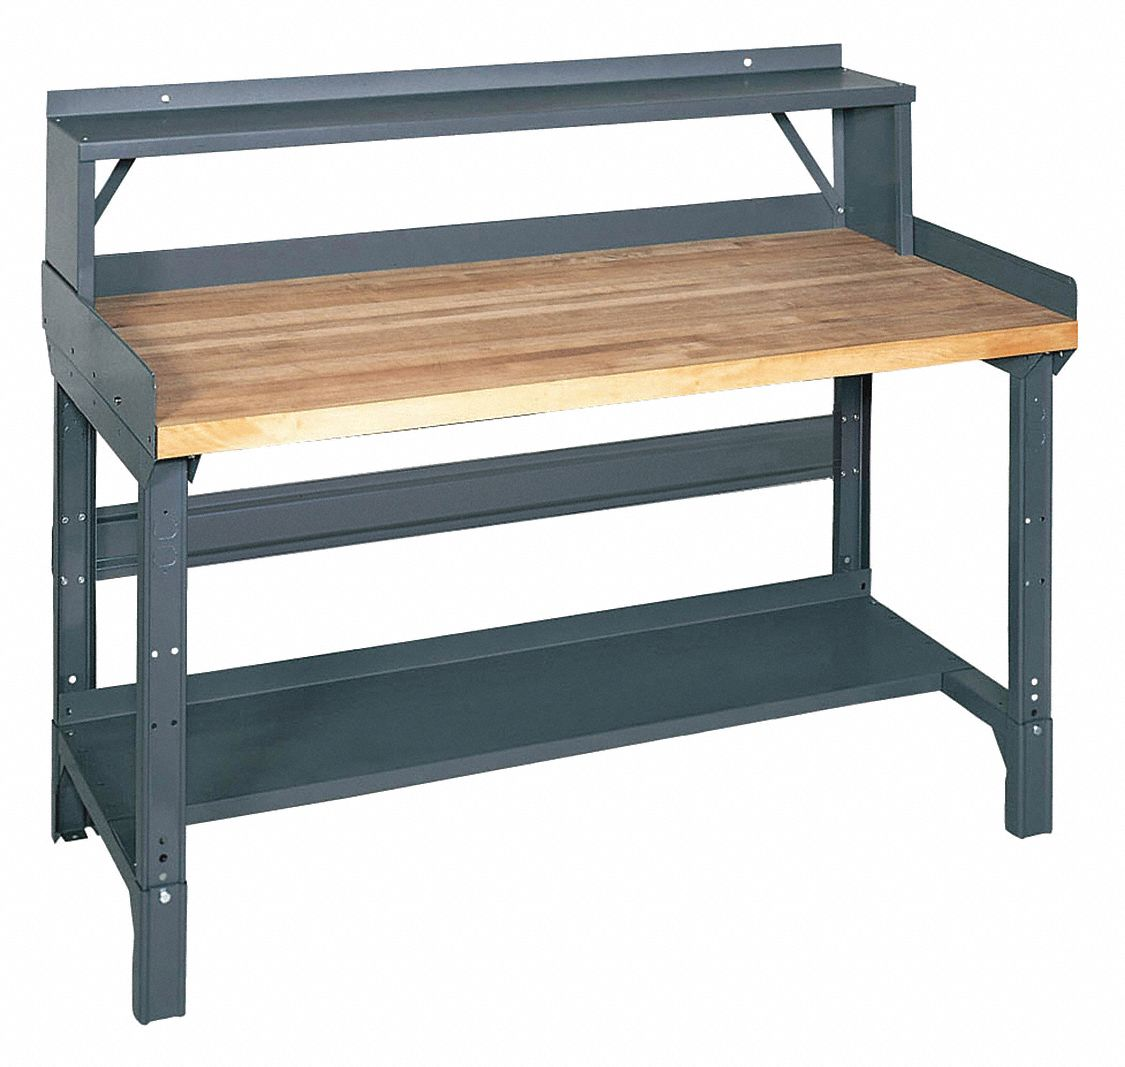 Marvelous Workbenches And Accessories Material Handling Grainger Alphanode Cool Chair Designs And Ideas Alphanodeonline